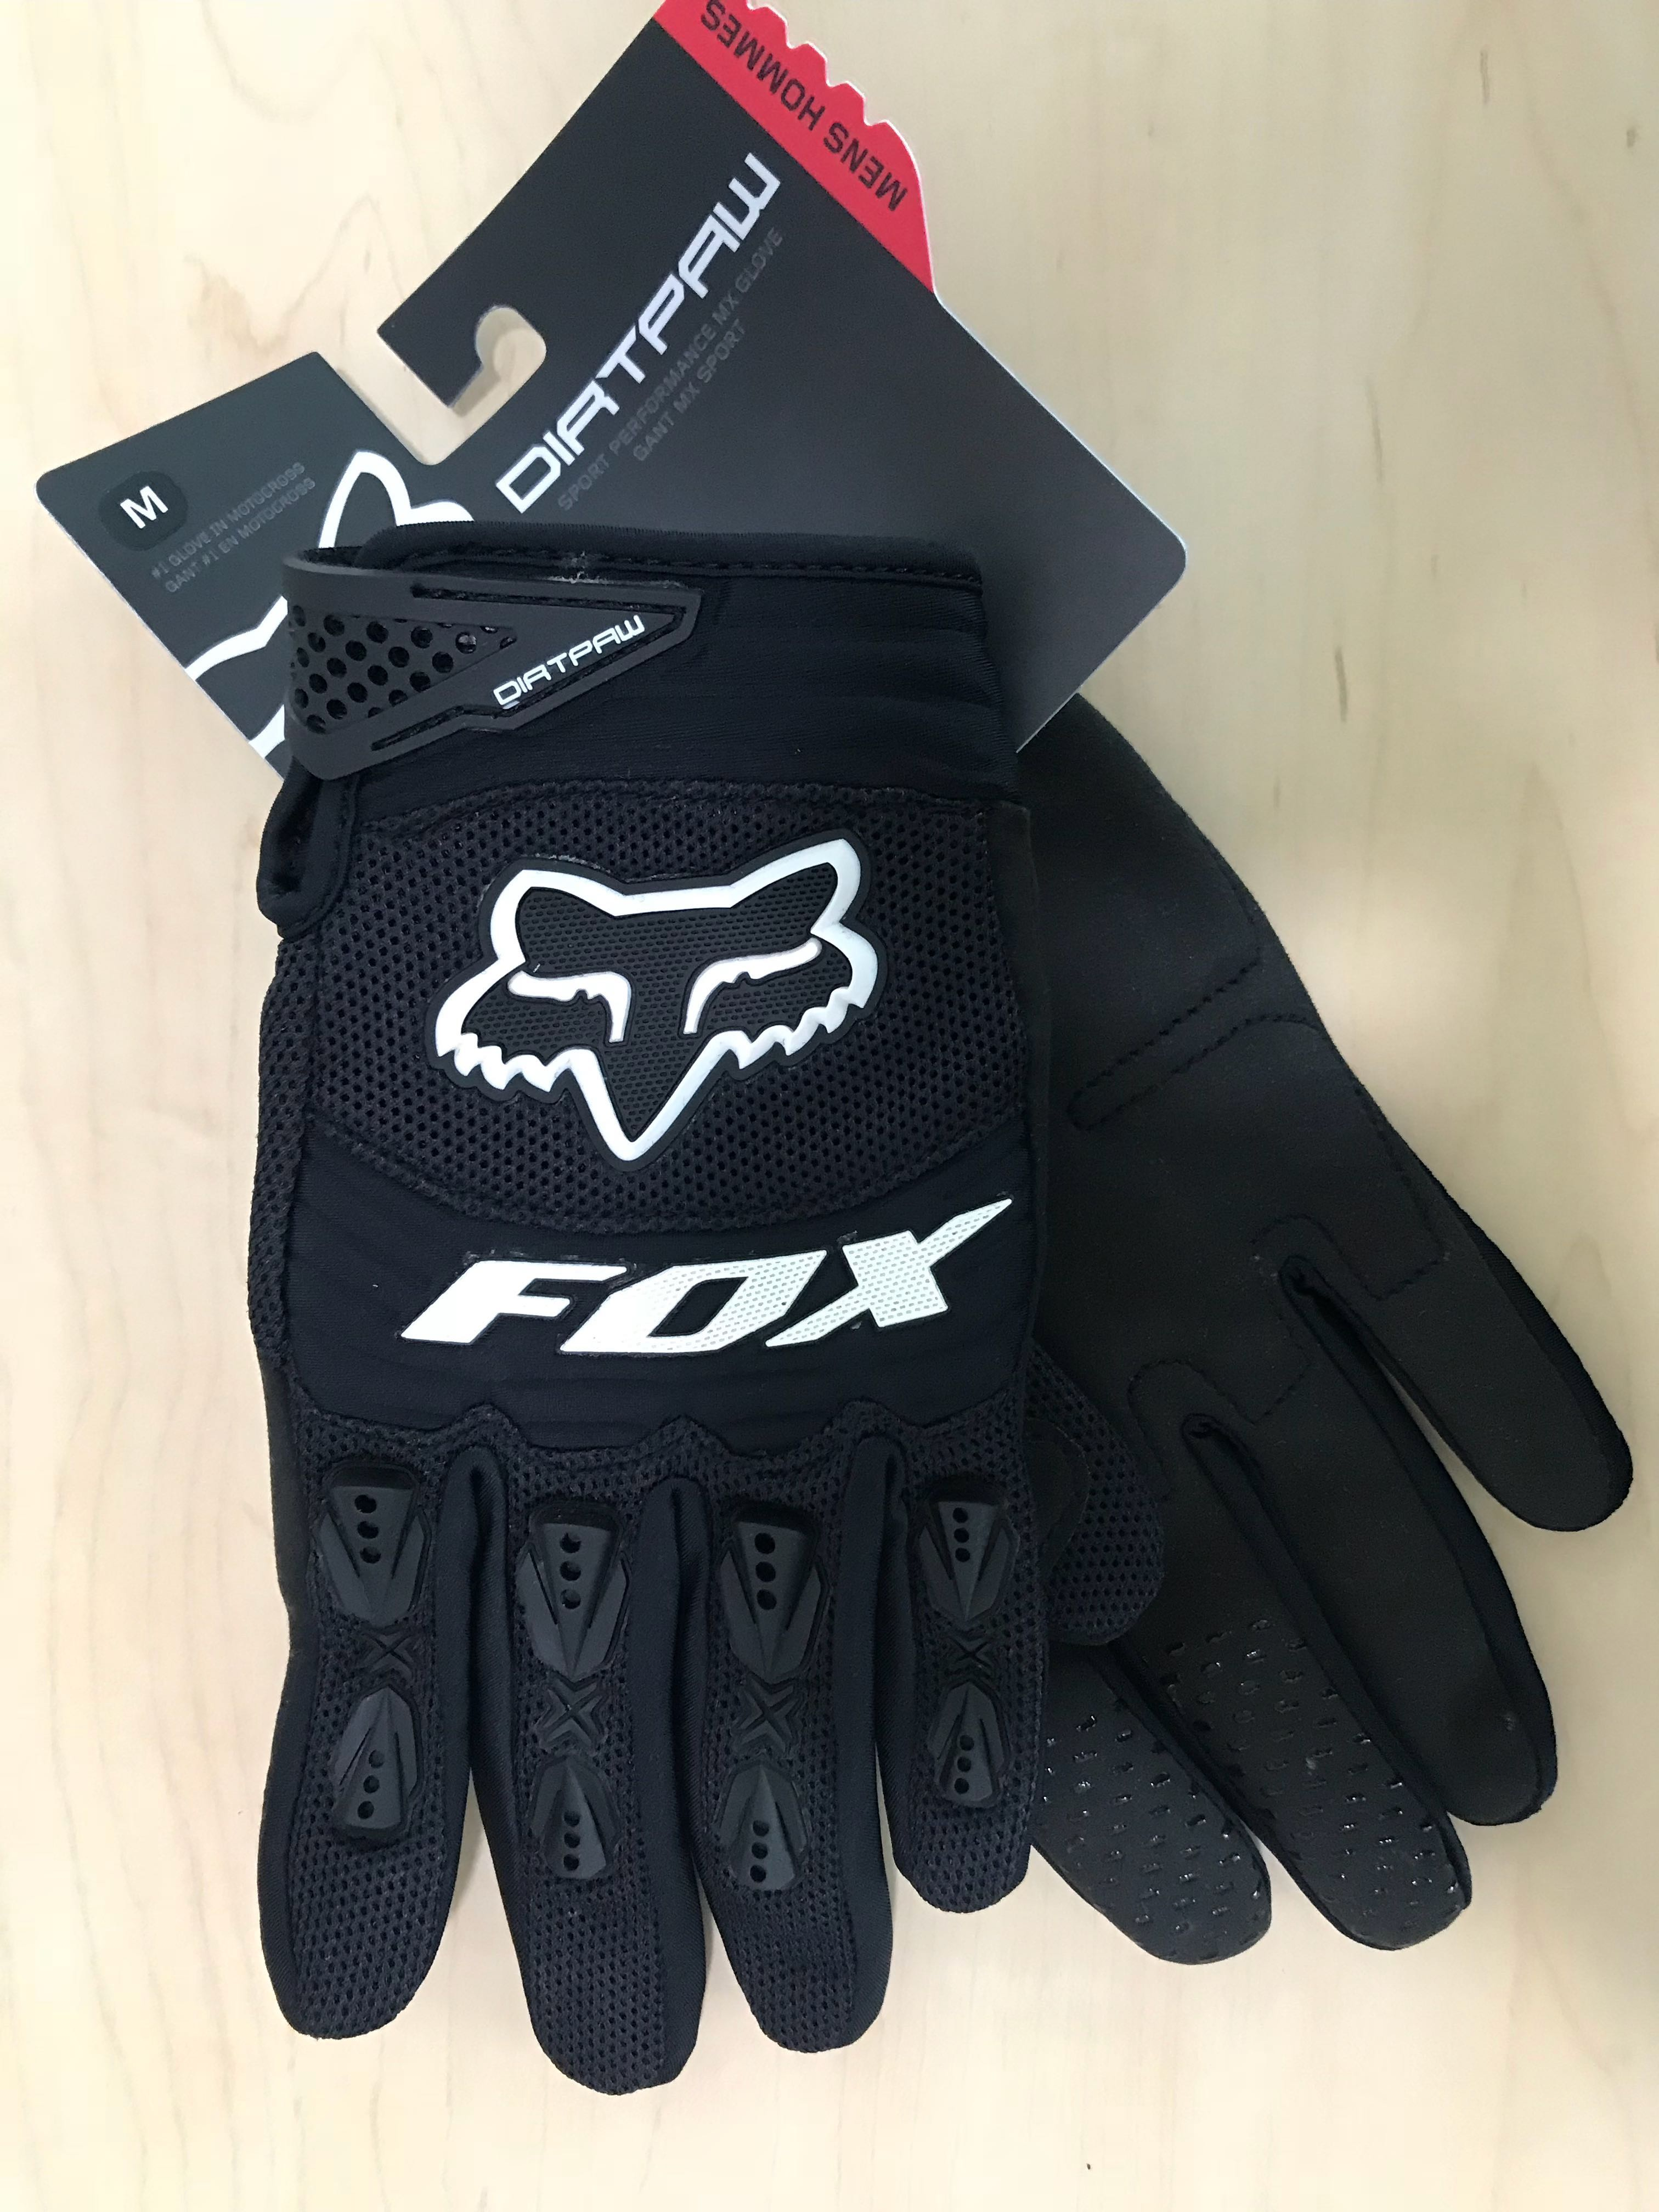 FOX MENS DIRT PAW RACE GLOVE SPORT MX PERFORMACE 2X LARGE WHITE HOMMES GLOVE MX